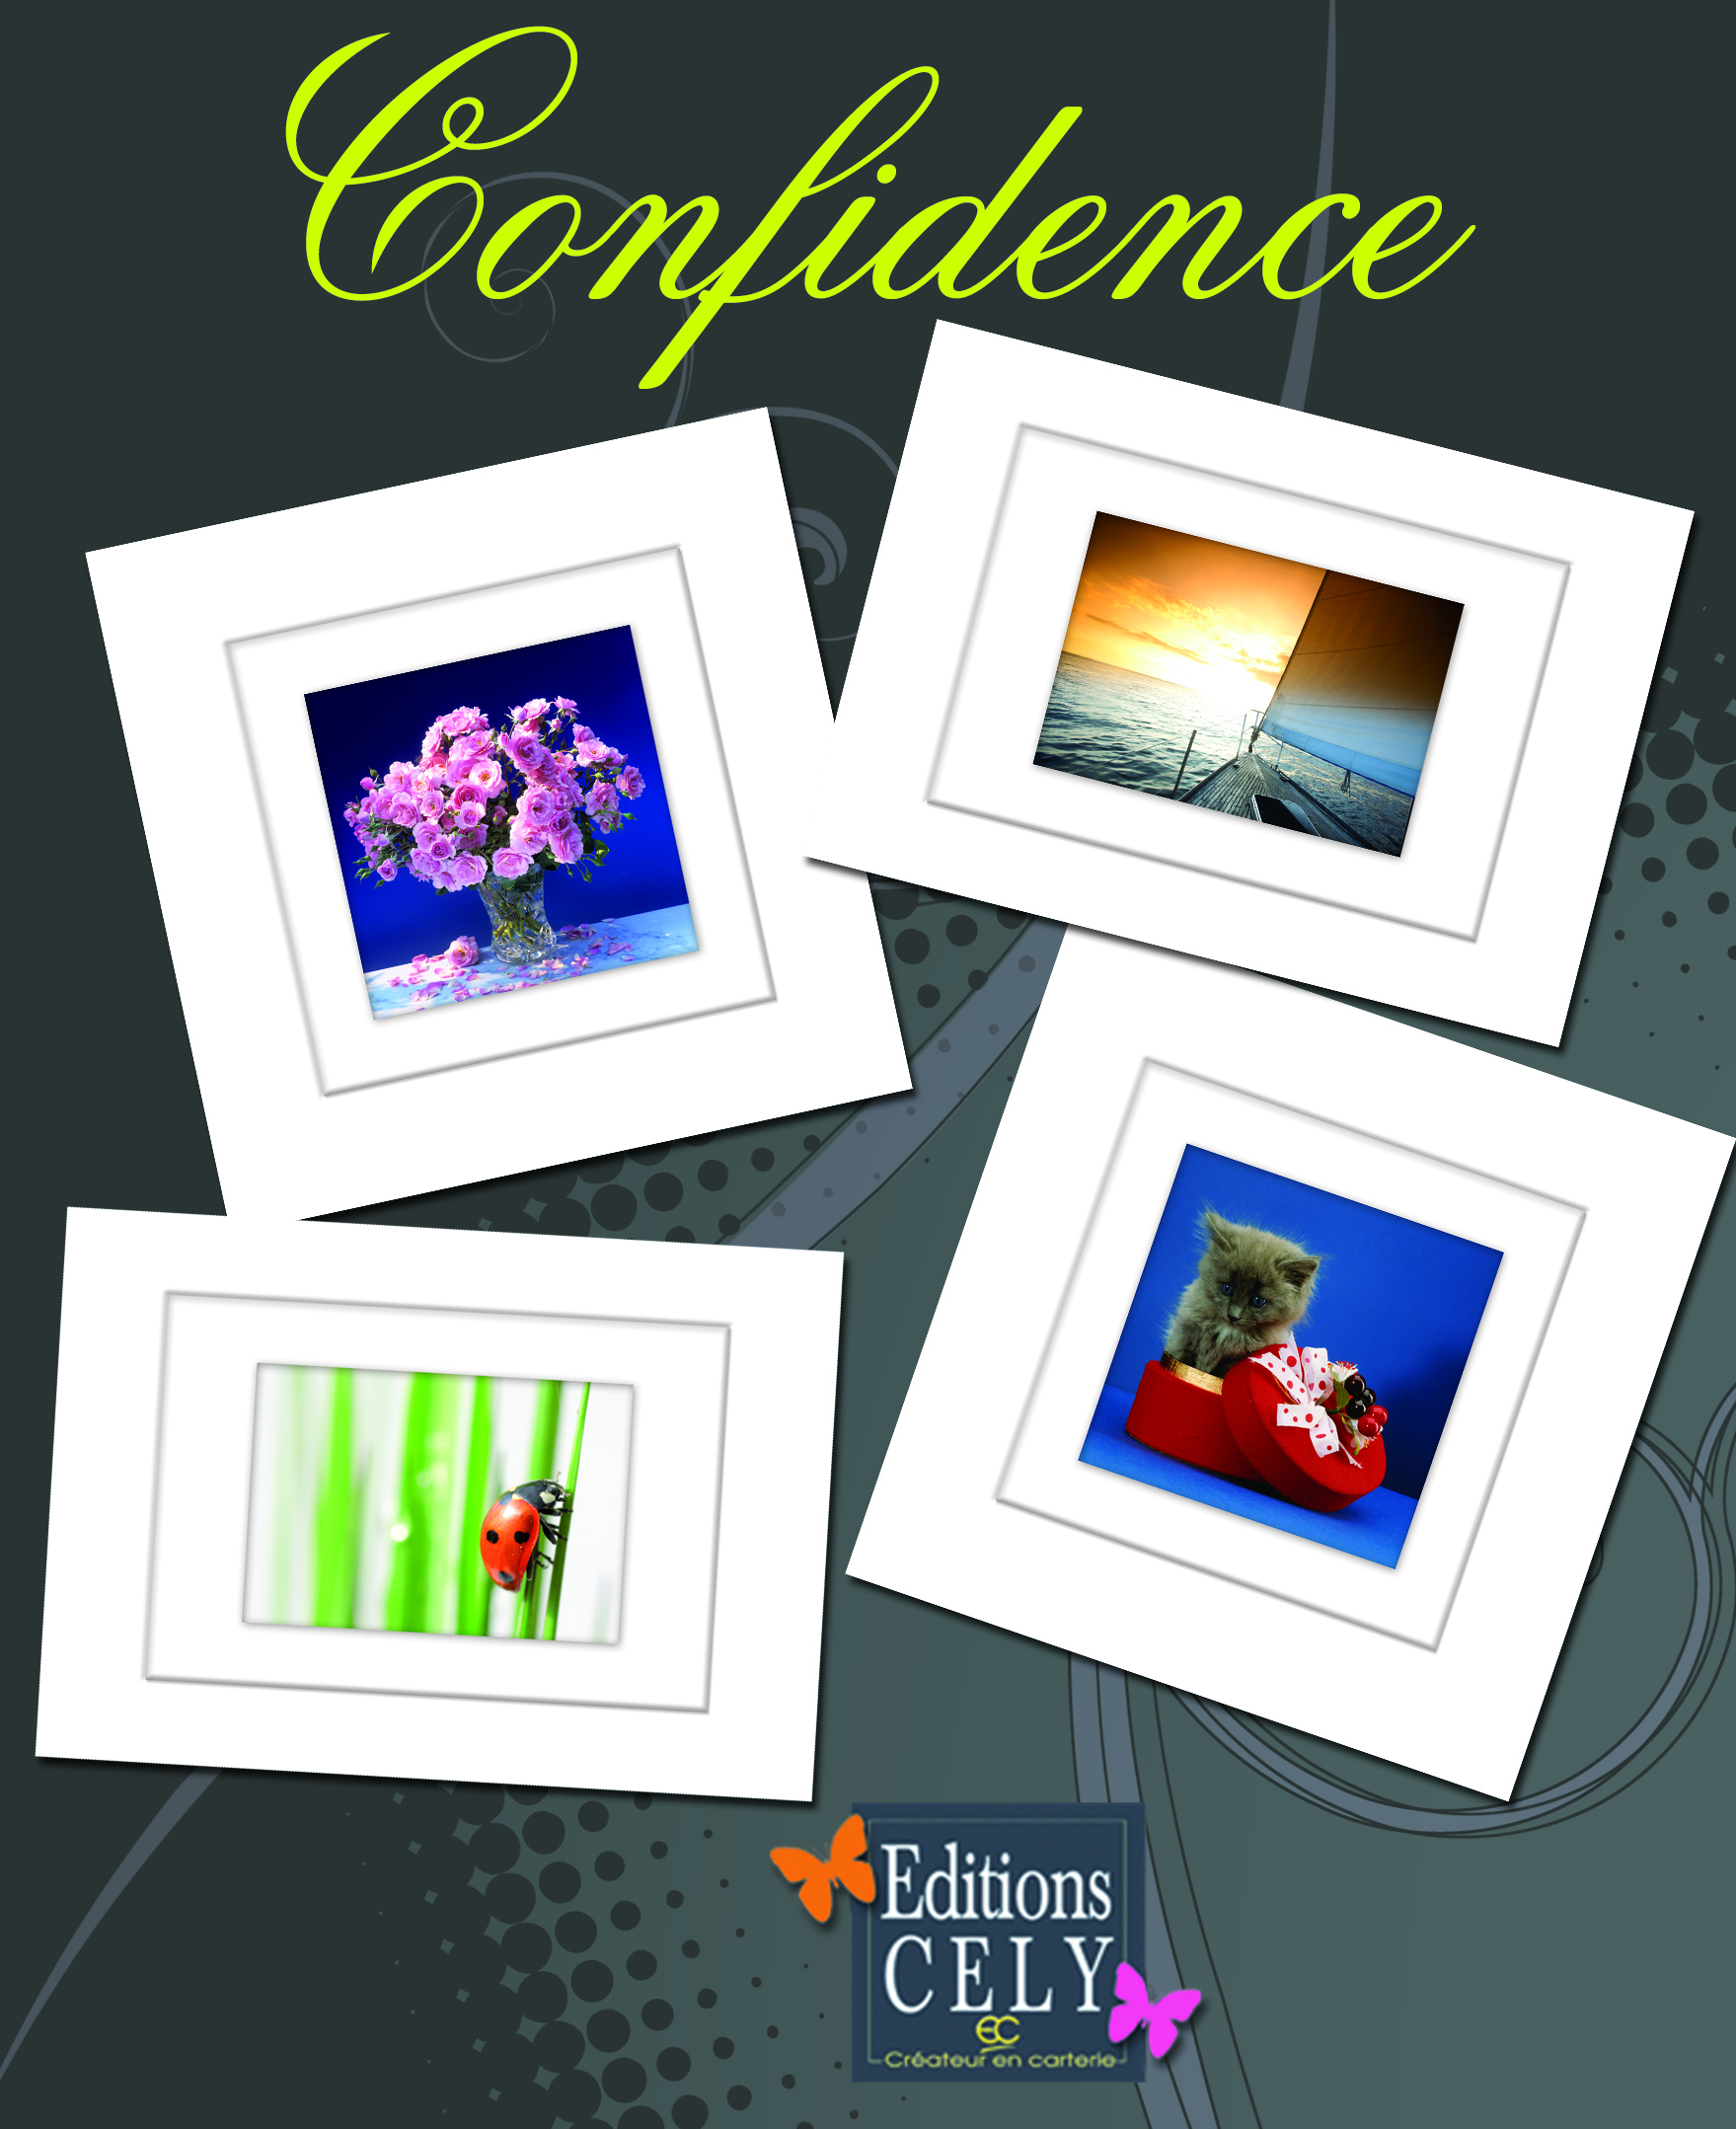 cartes postales Cely CONFIDENCE